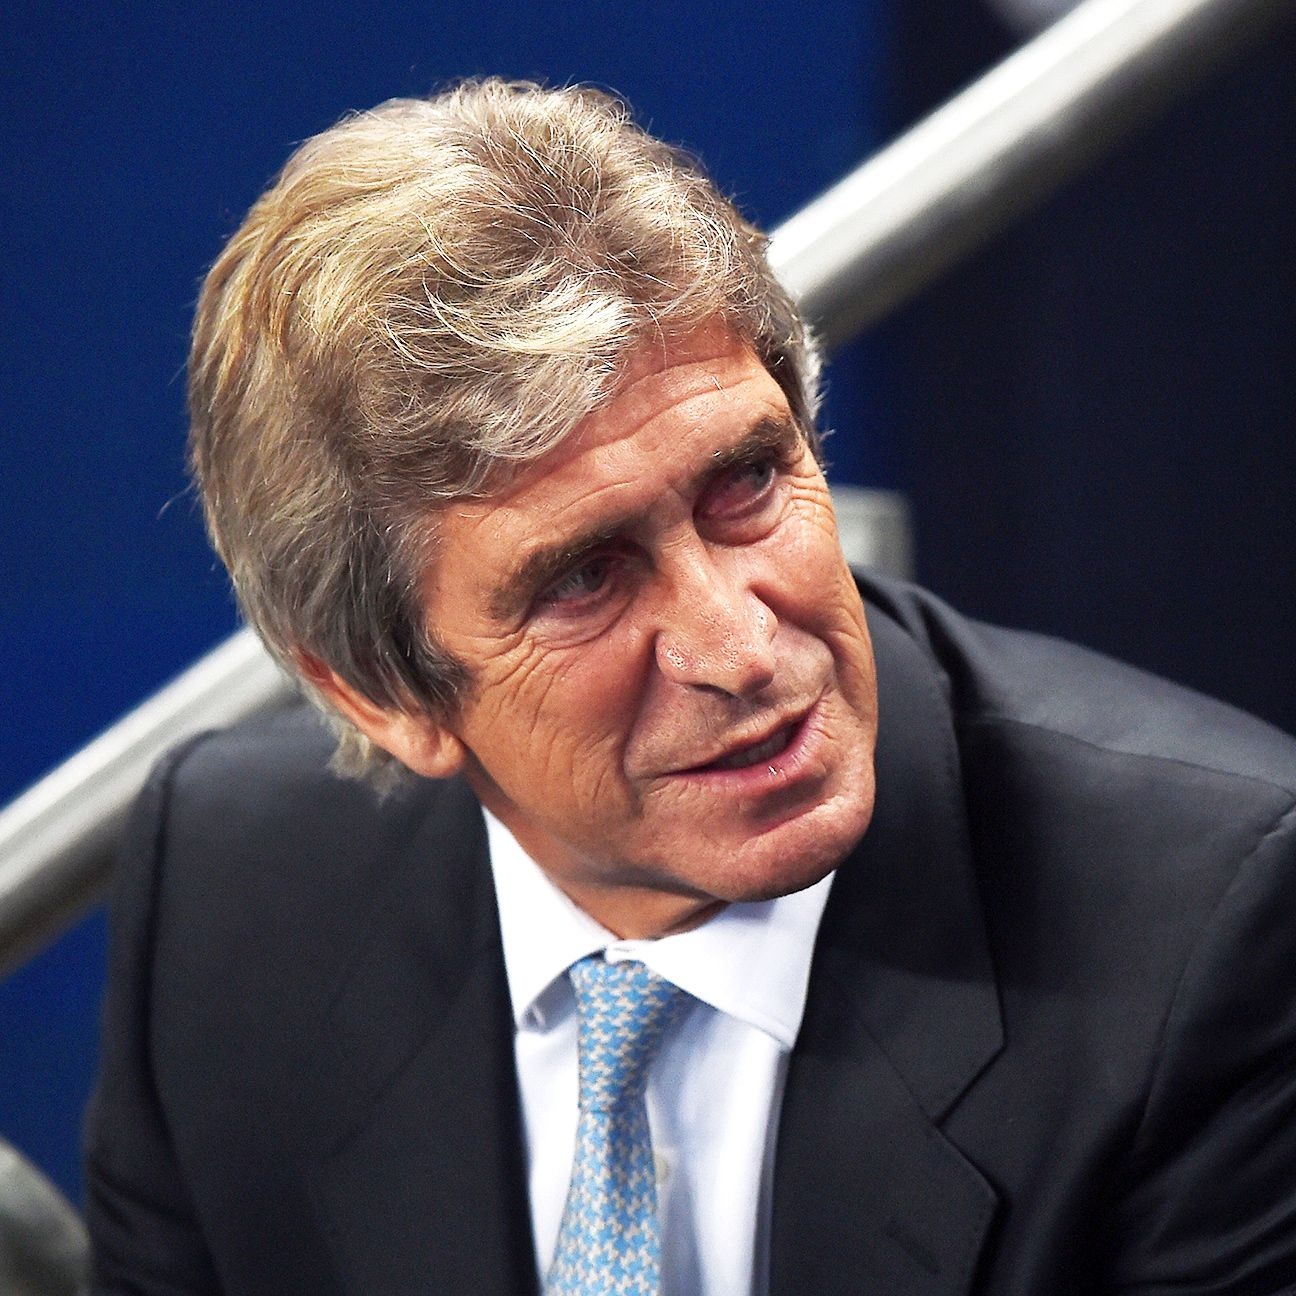 In their previous visit to Villa Park, Manuel Pellegrini's Manchester City fell 3-2.